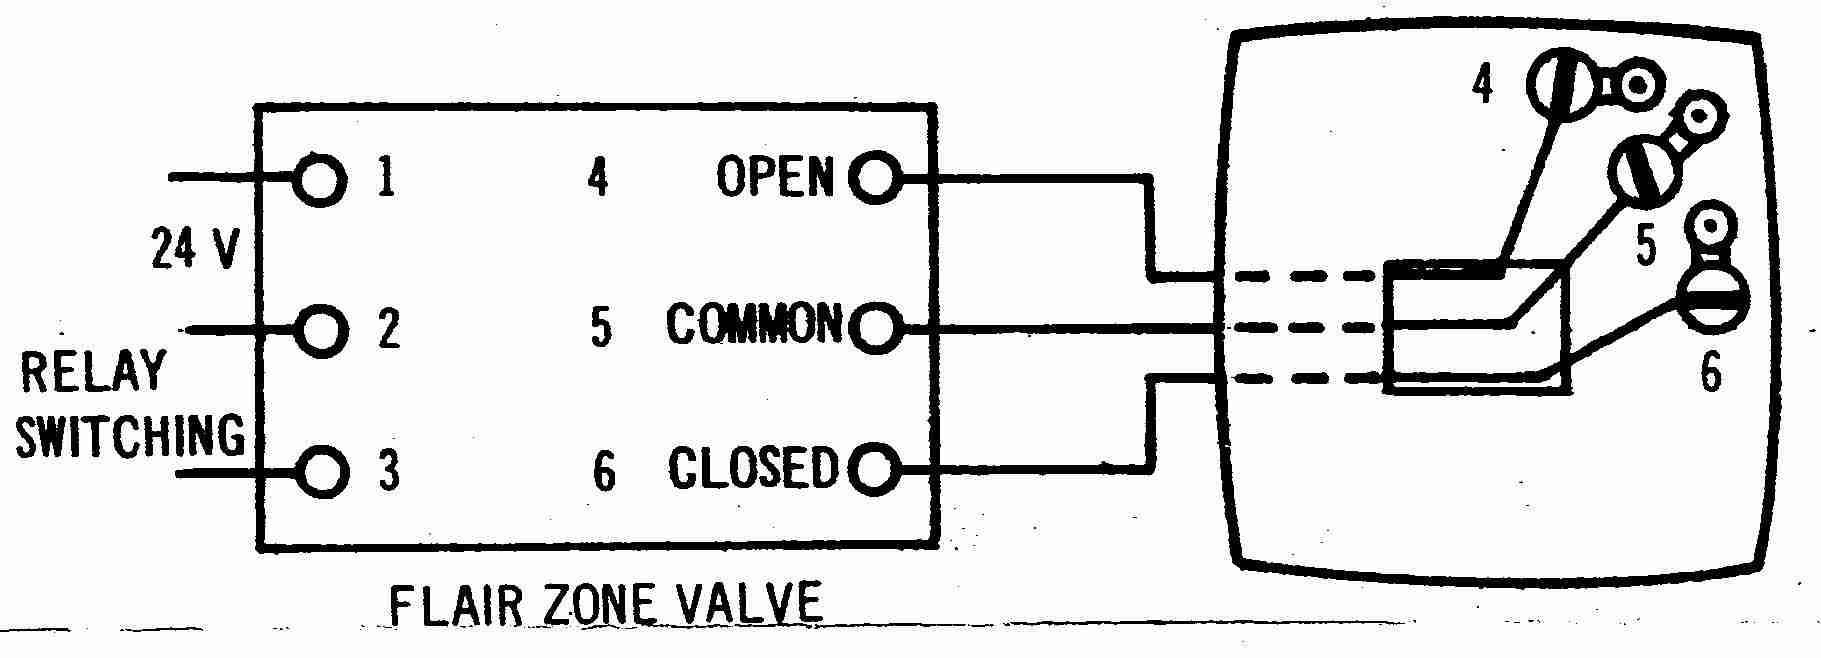 Room Thermostat Wiring Diagrams For Hvac Systems - 4 Wire Thermostat Wiring Diagram